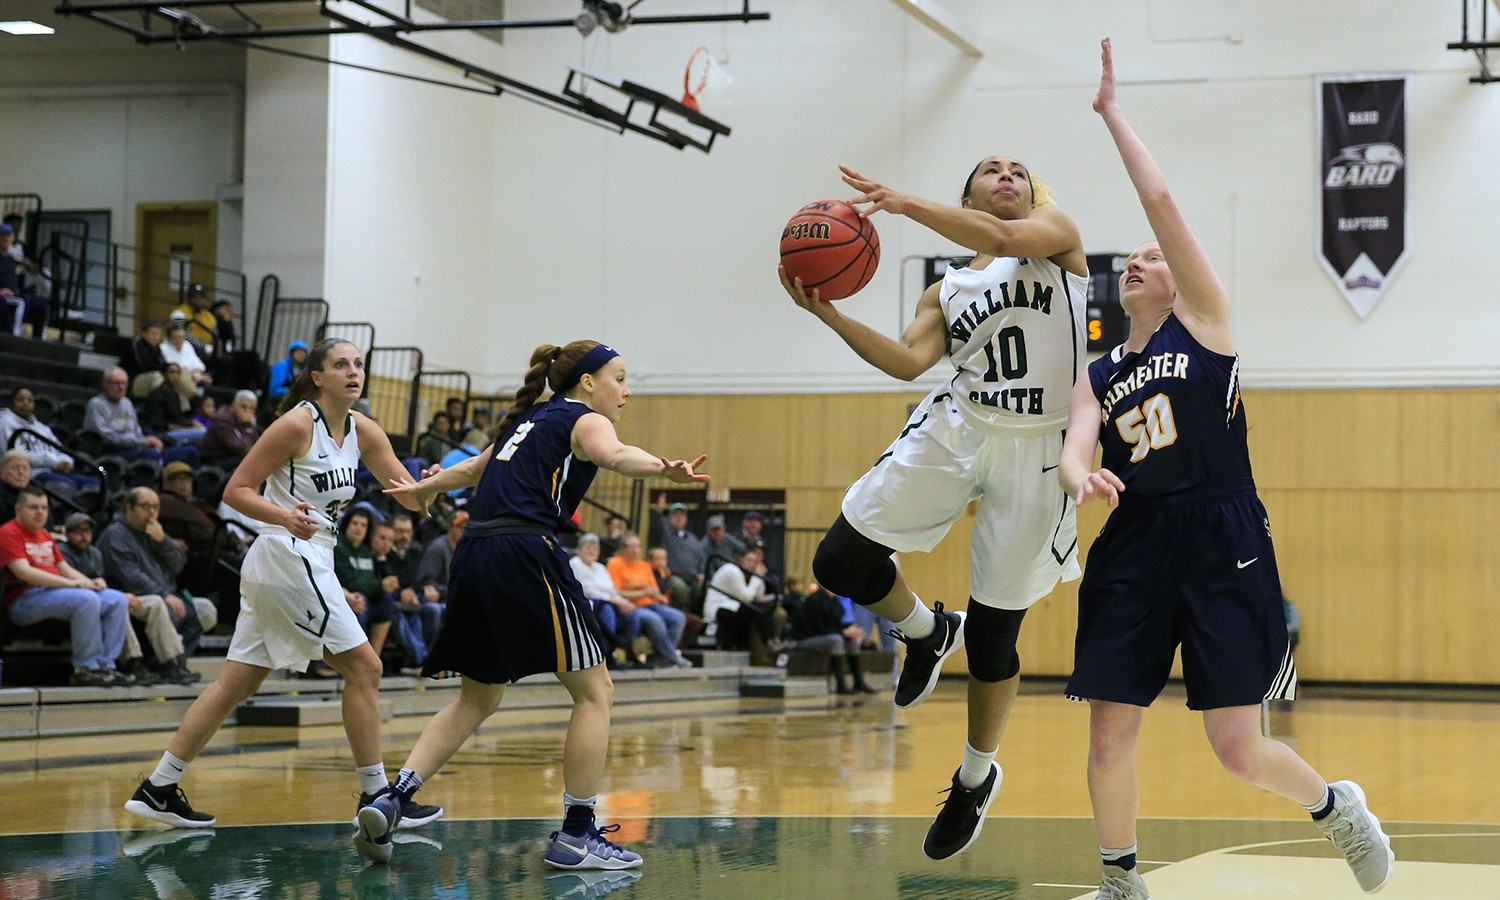 Kendra Quinn-Moultrie '18 goes for a shot during William Smith's game against the University of Rochester.